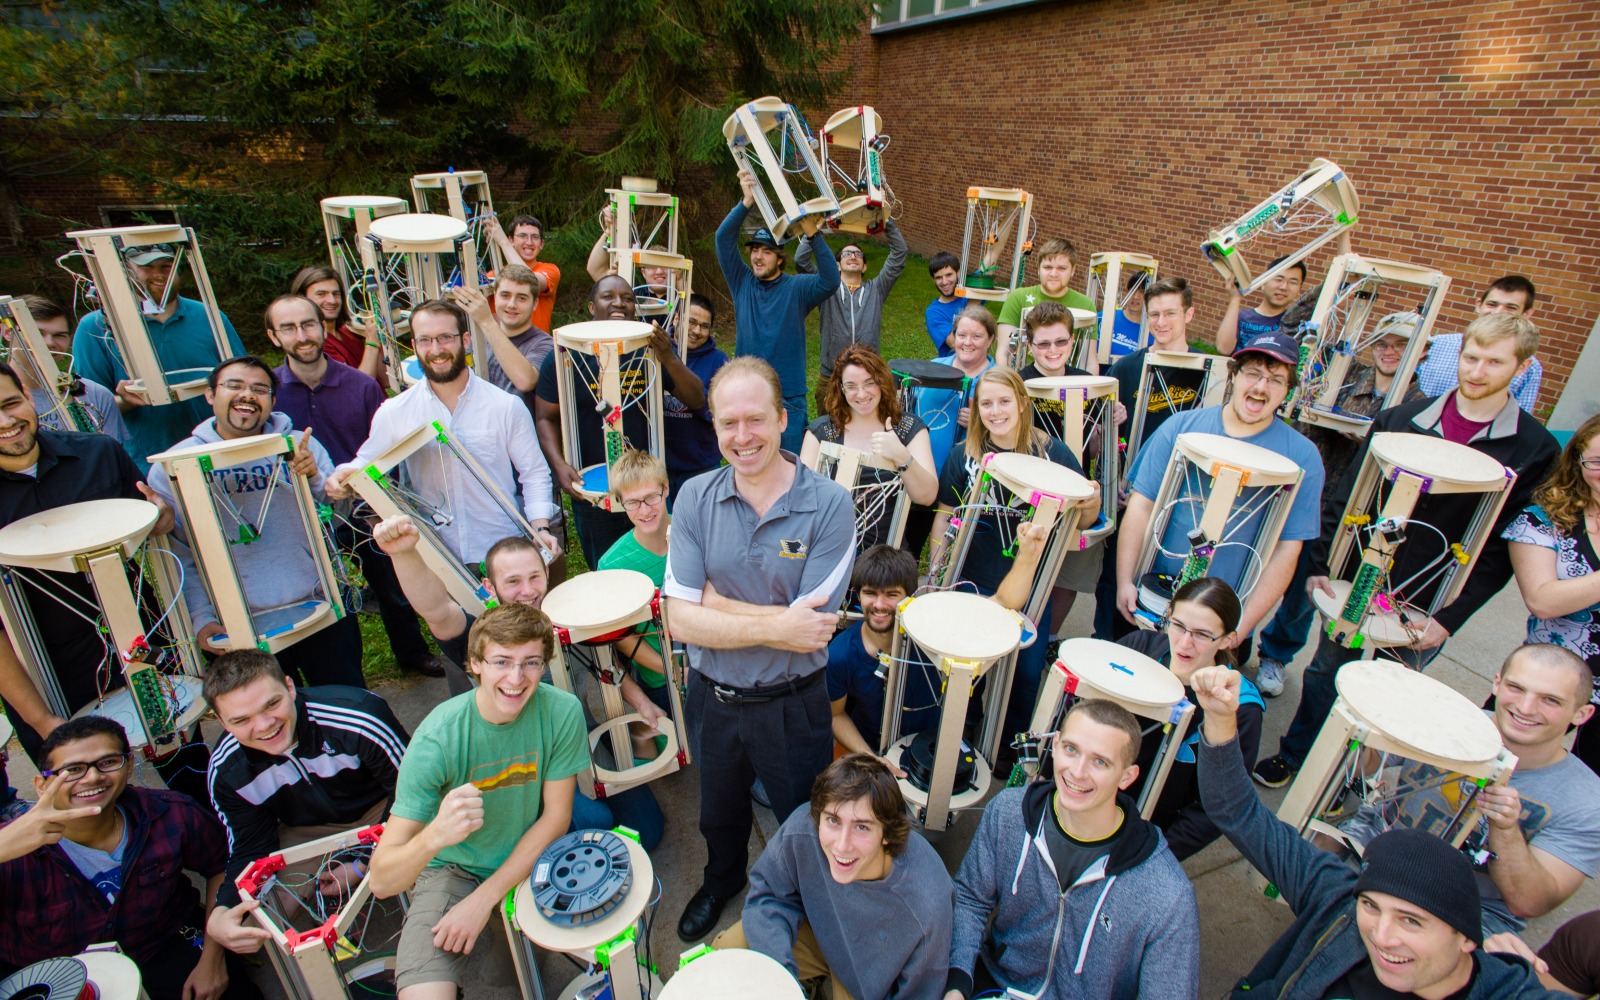 Michigan Tech students with Professor Joshua Pearce in the center celebrate a massive delta-style 3D printer build as part of a class on Open Source 3D Printing. Photo by S. Bird/MTU, CCBYSA